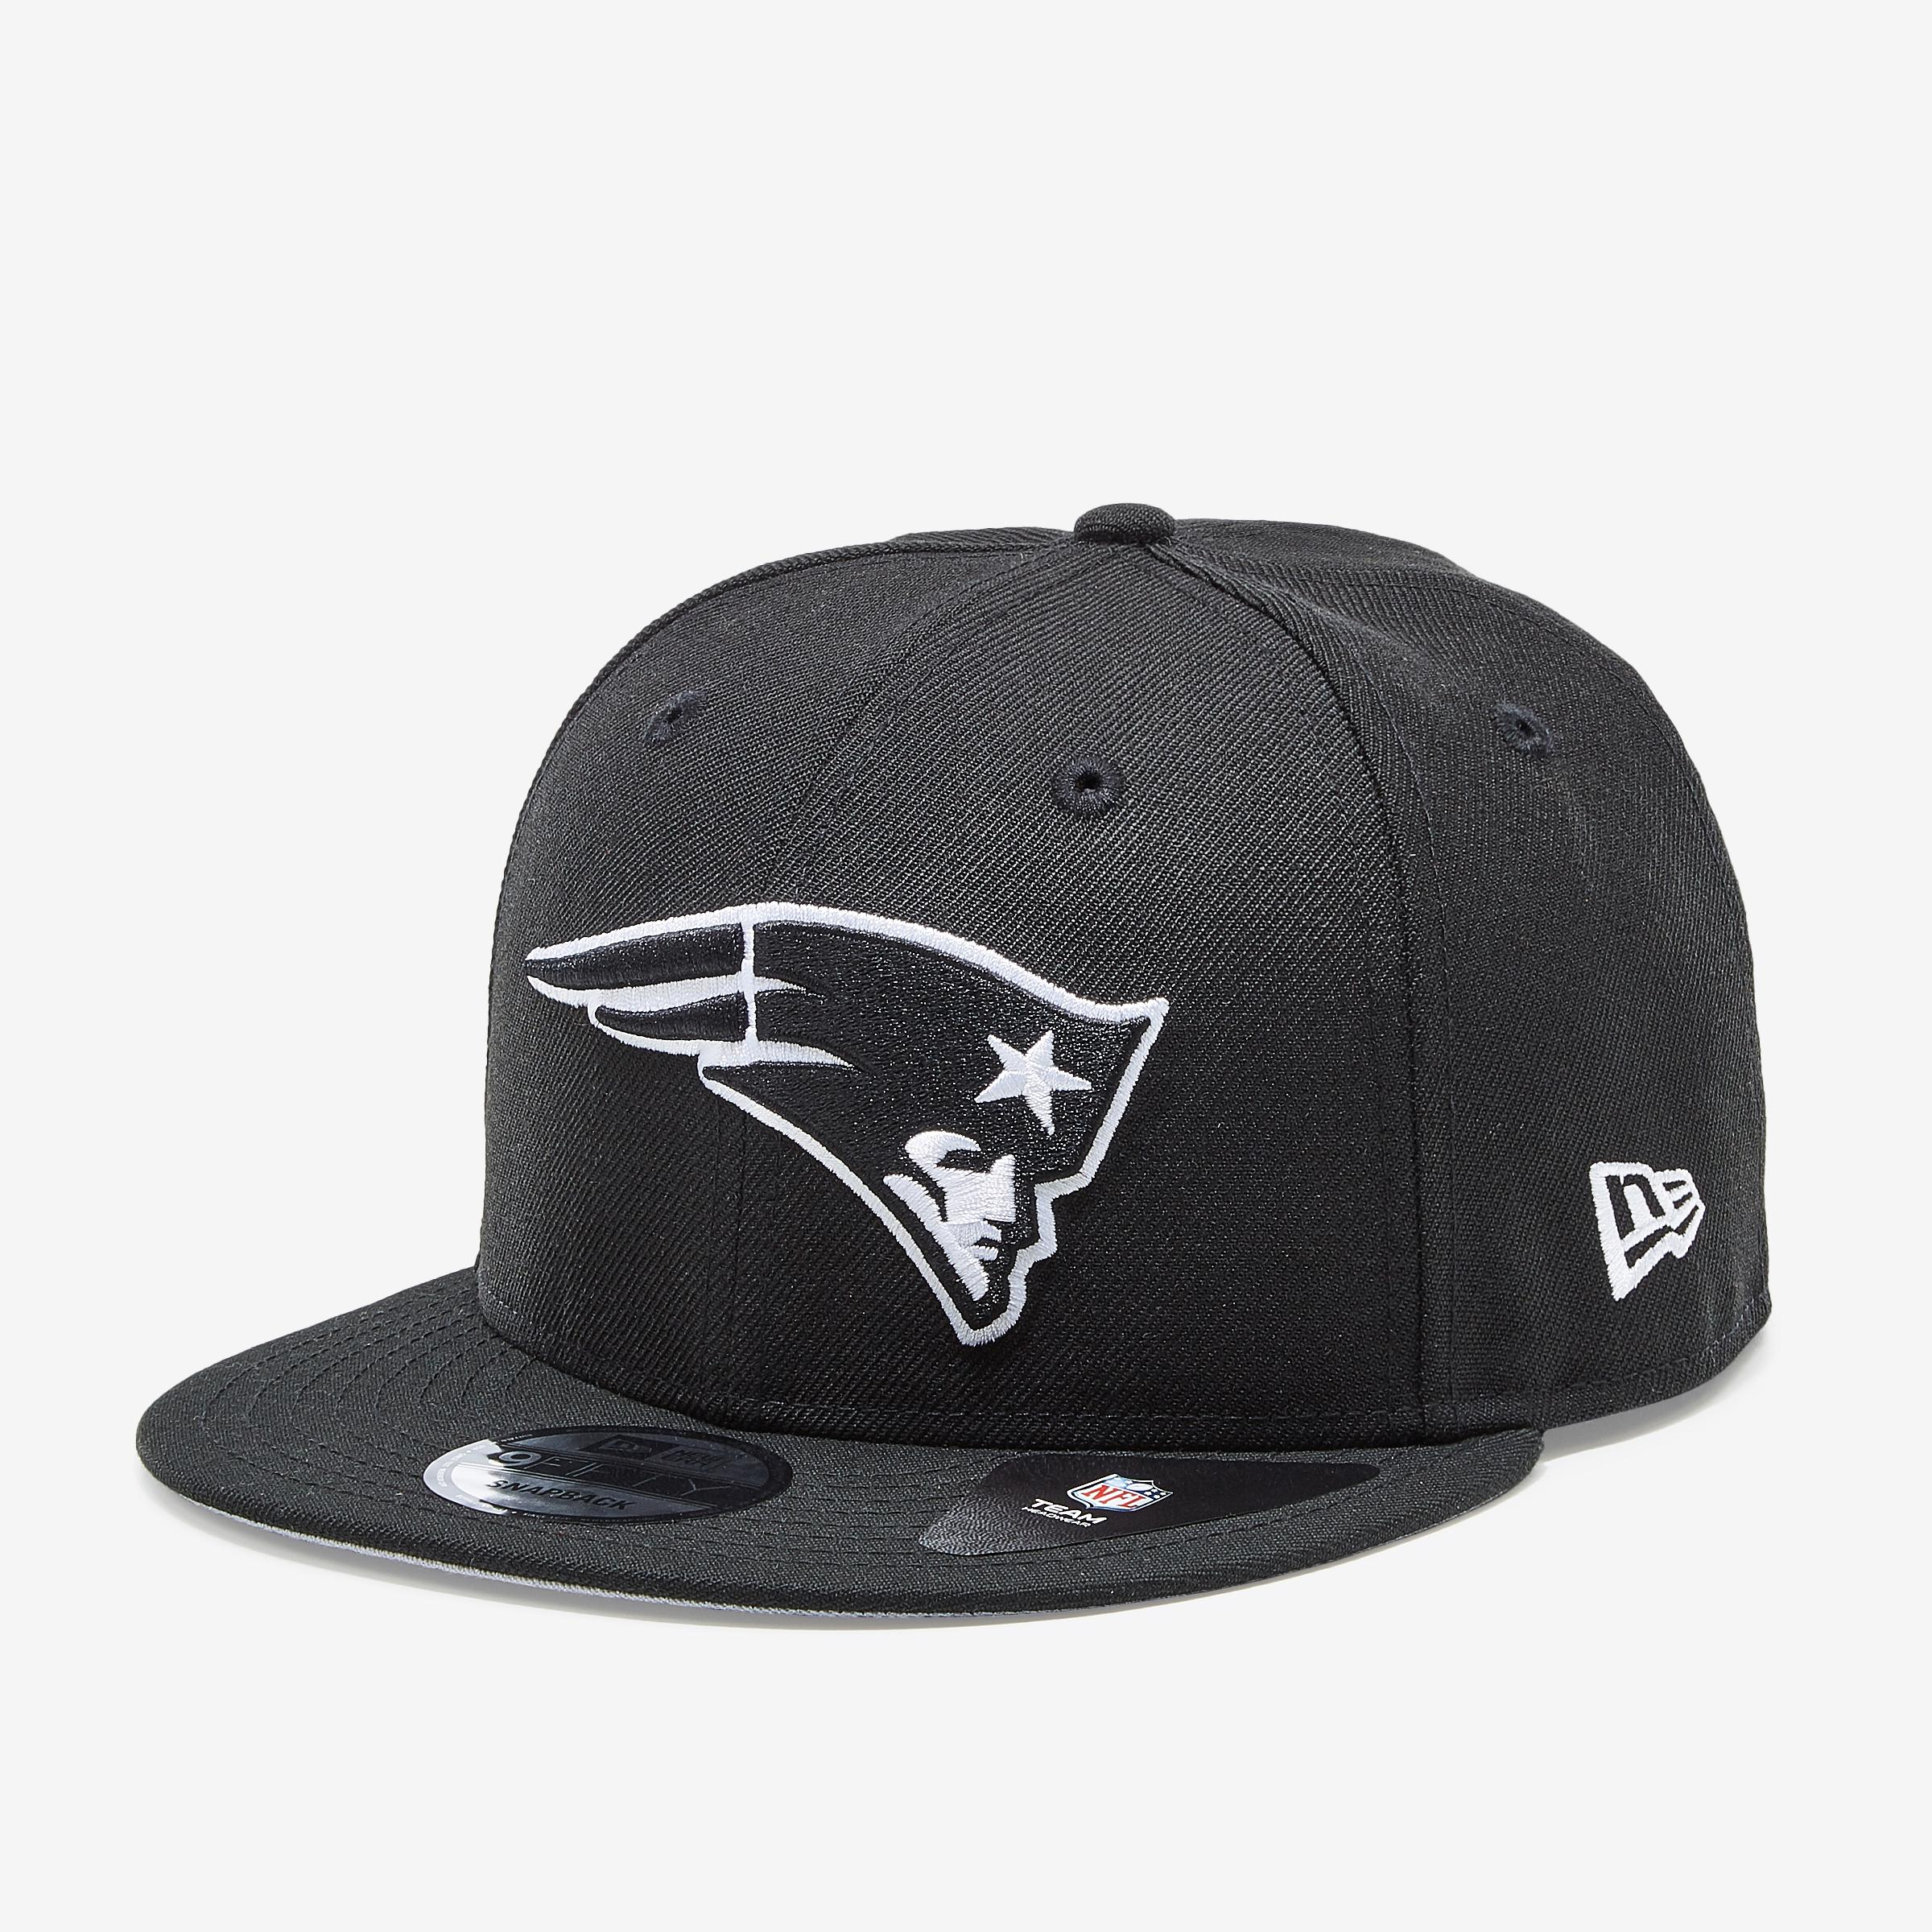 Patriots 9fifty Snapback